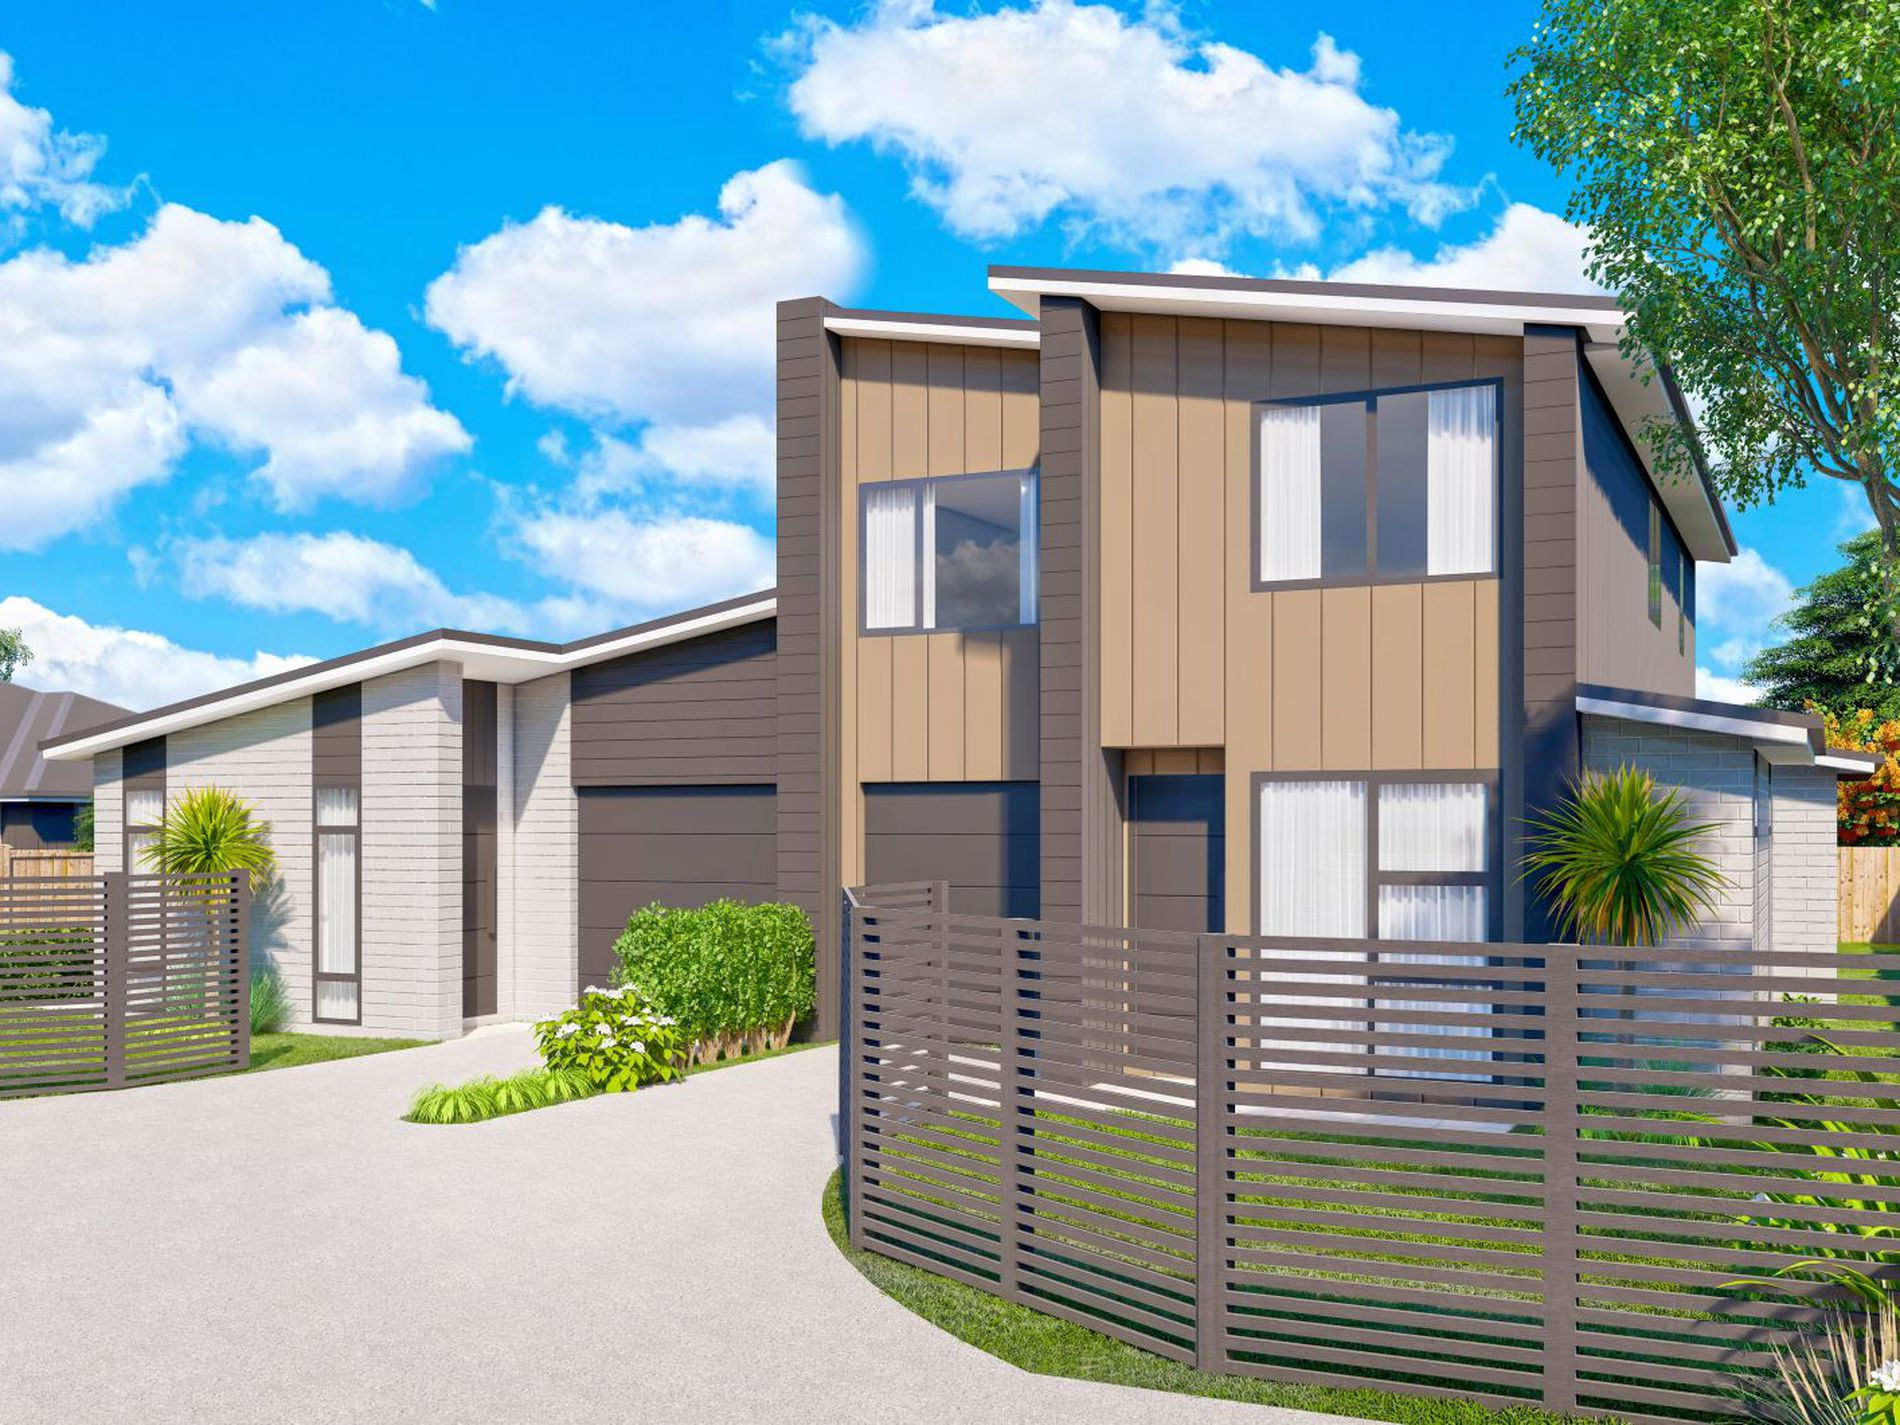 1 / 56 / 333 Horsham Downs Road, Rototuna North